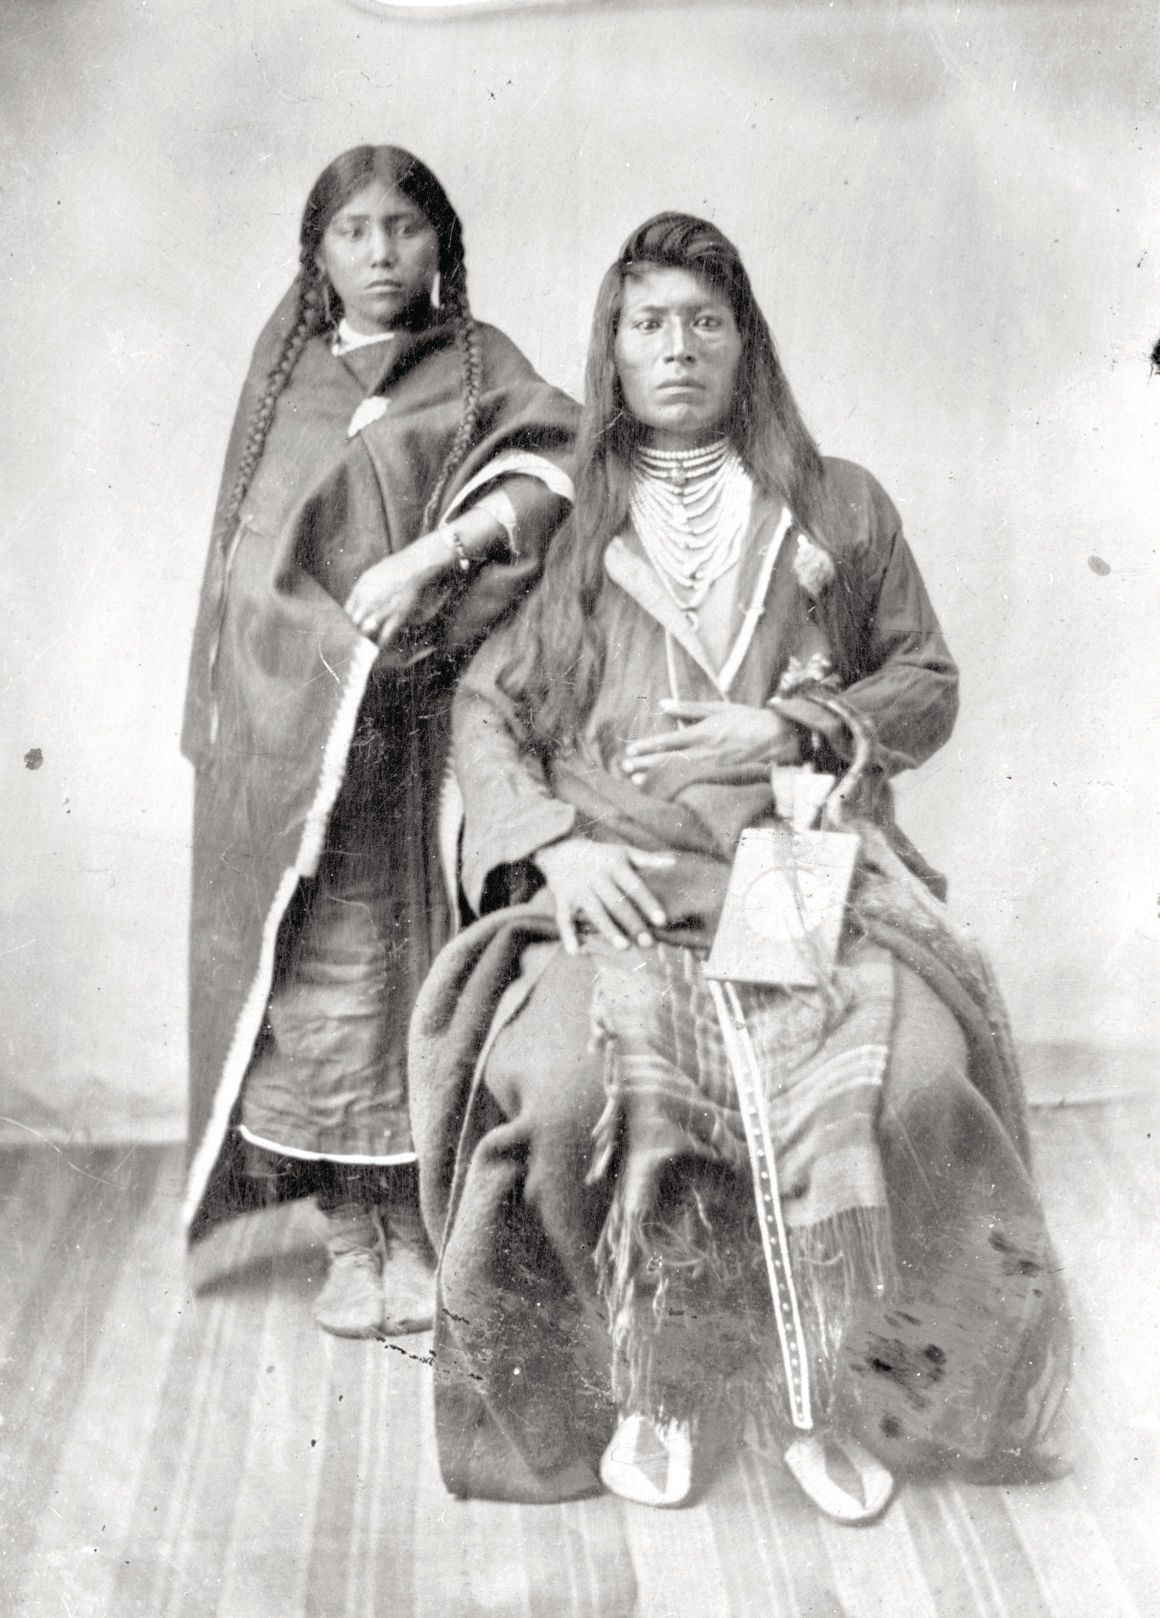 Plateau Indian man and woman, 1860s